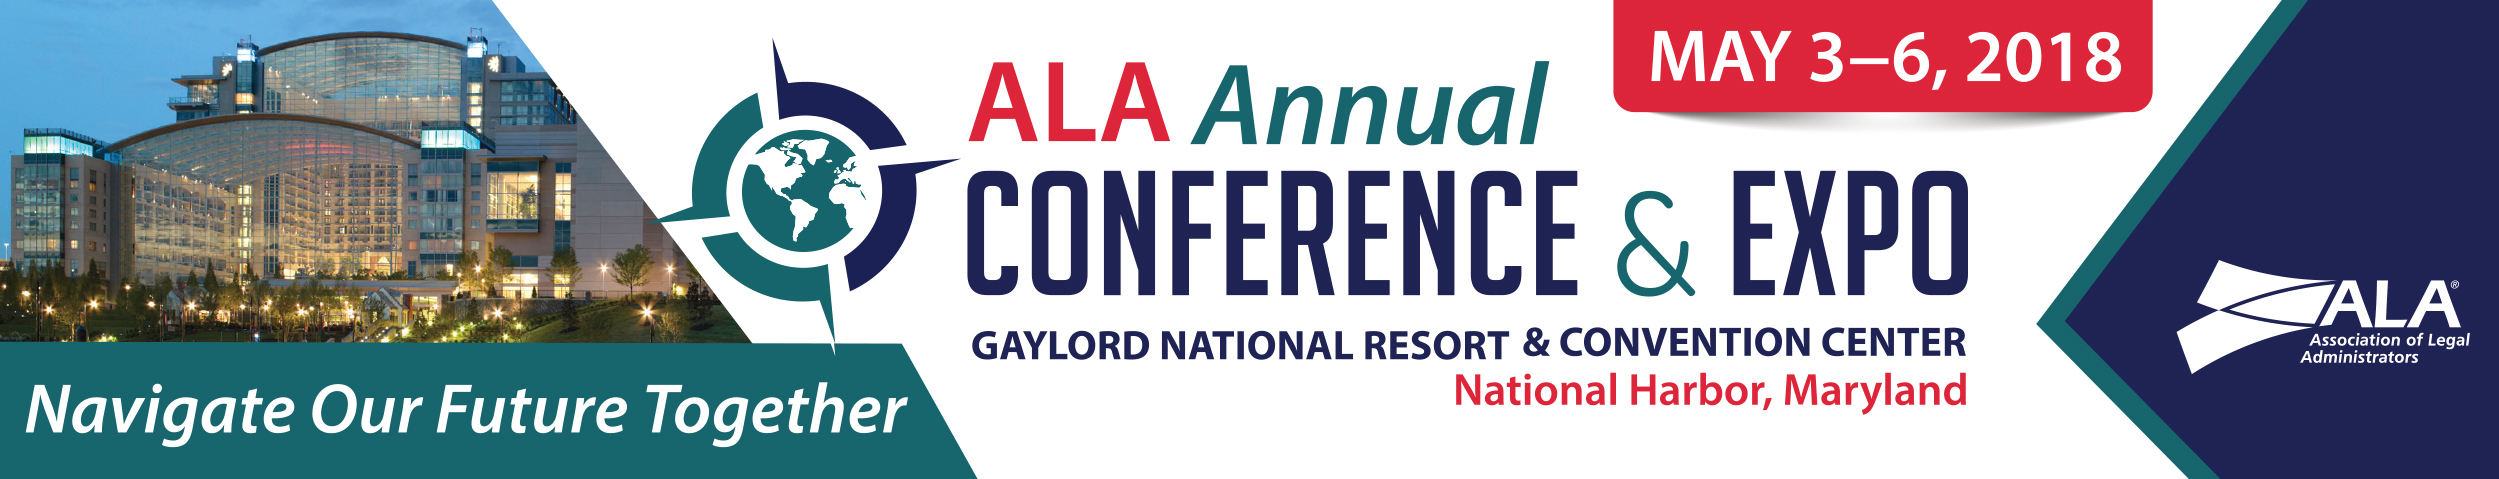 2017 ALA Annual Conference & Expo